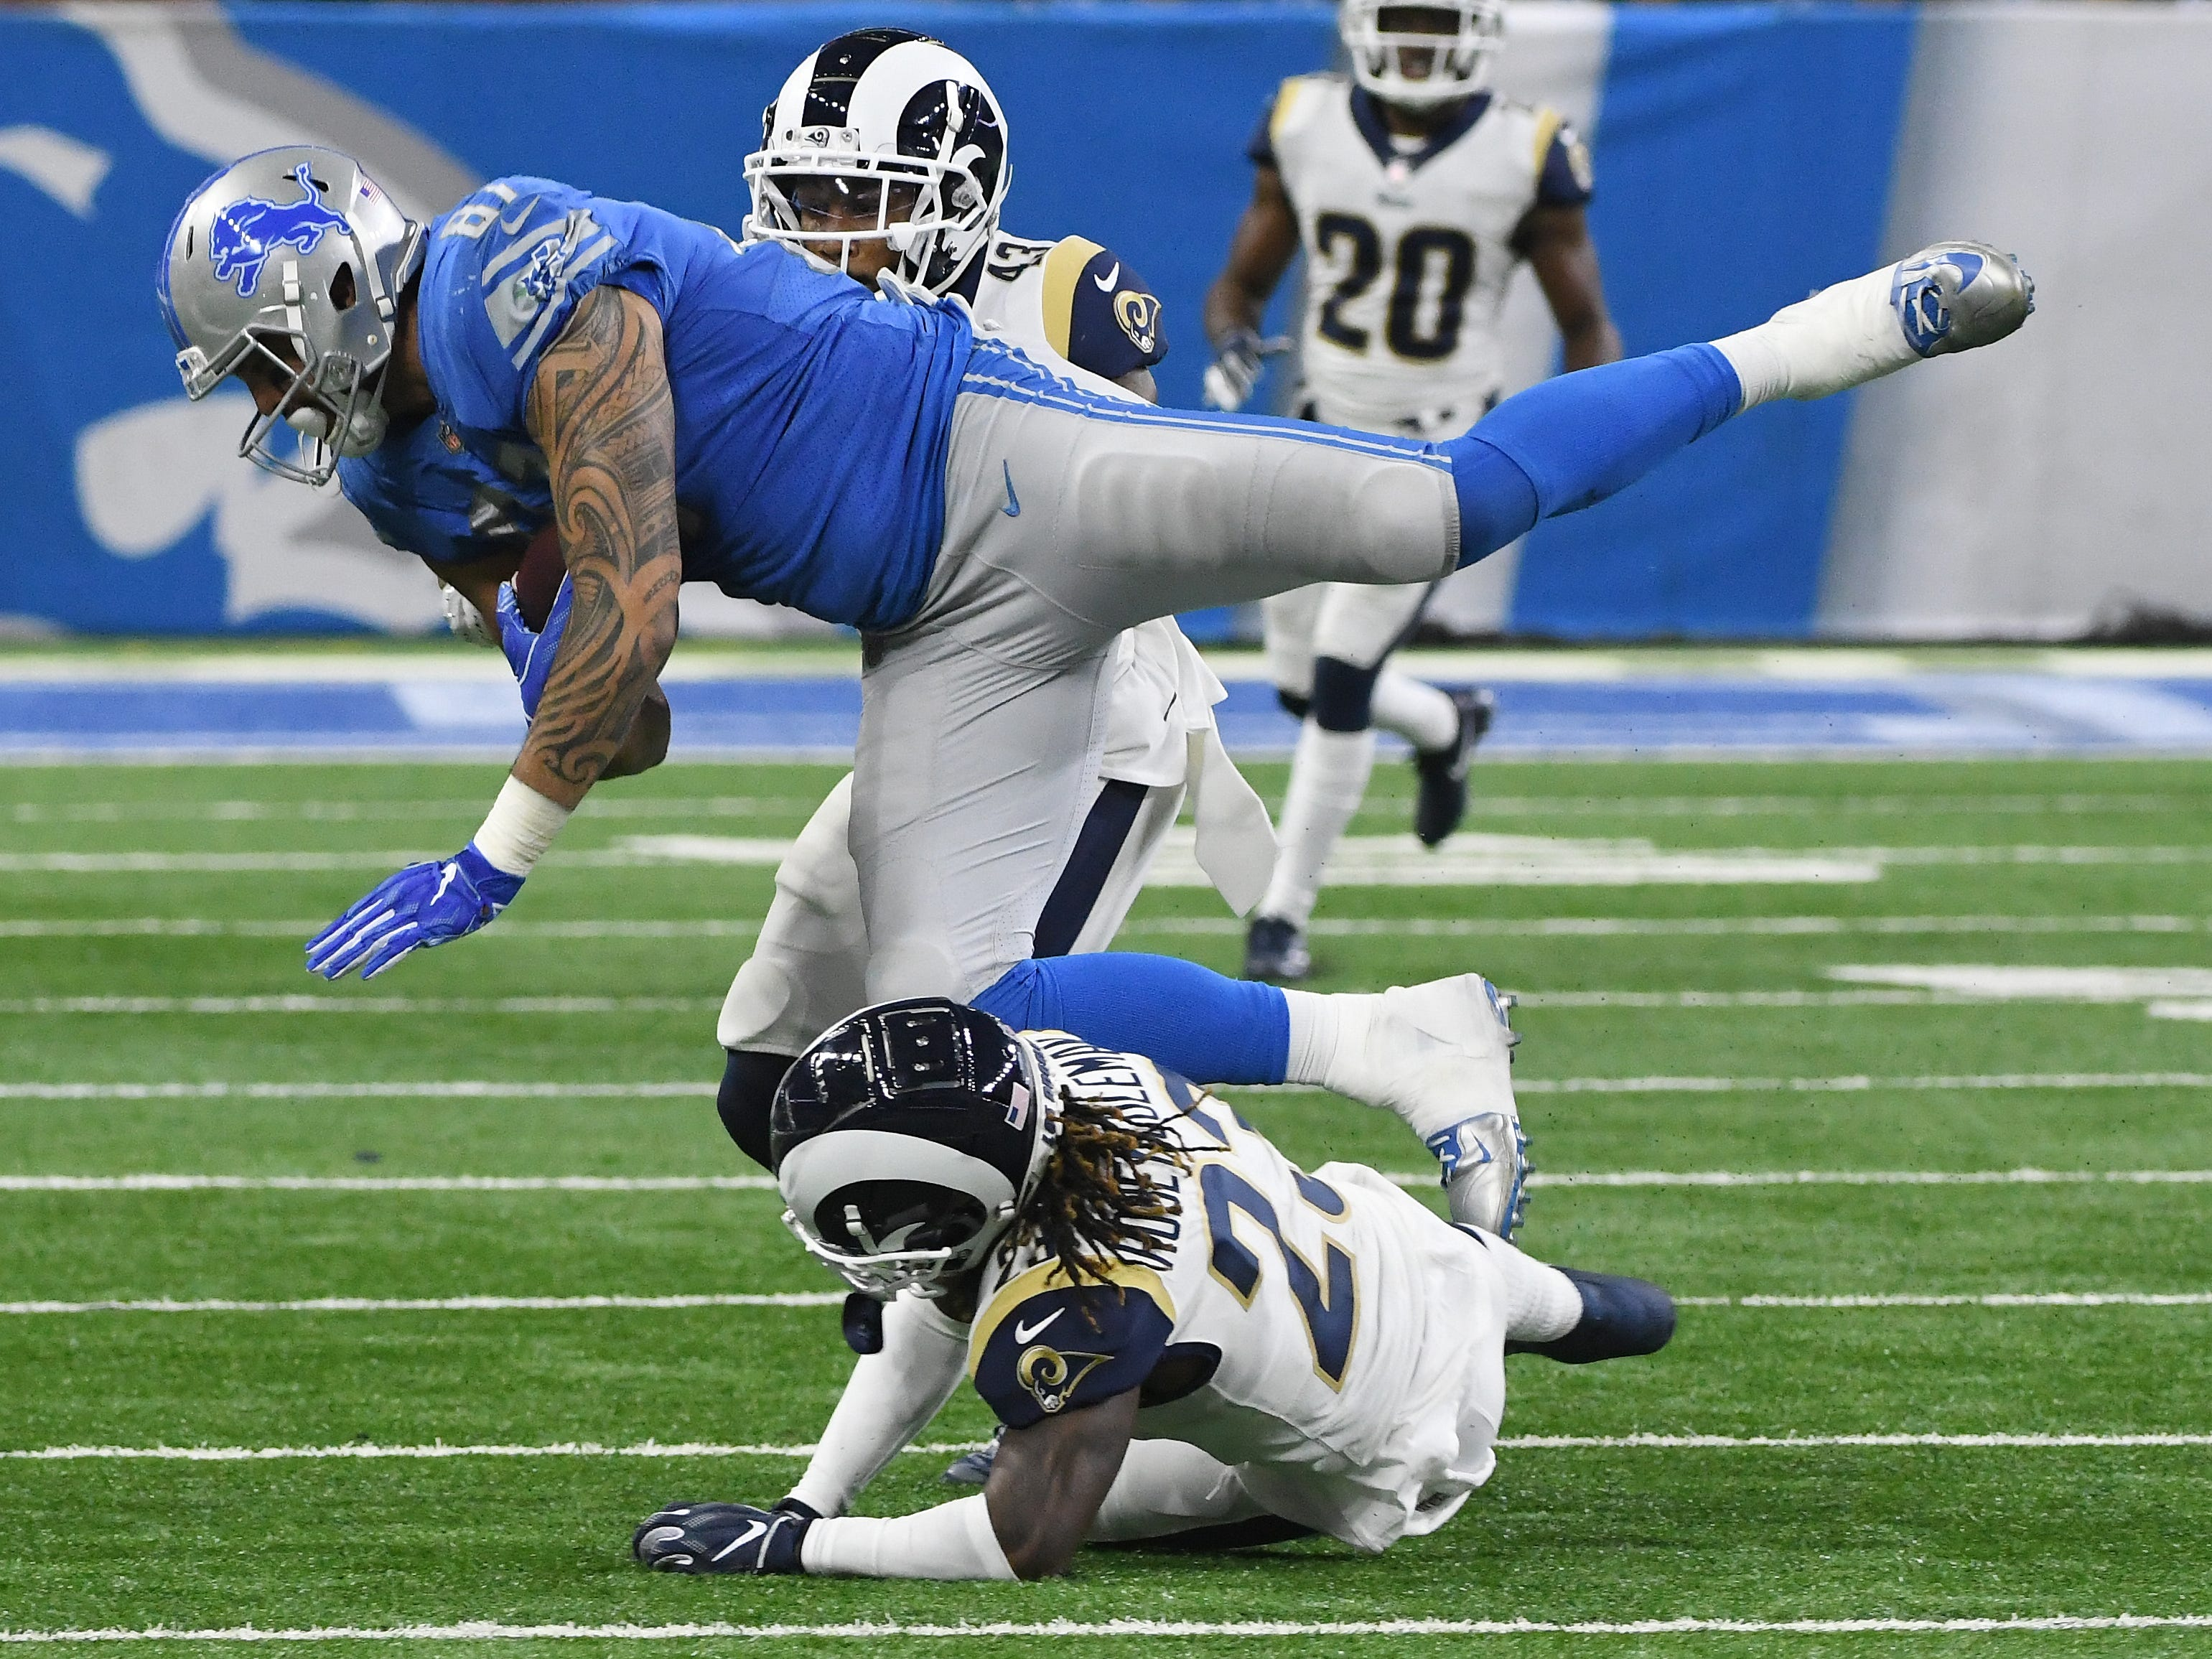 Lions' Levione Toilolo pulls in a reception over Rams' Nickell Robey-Coleman late in the fourth quarter.